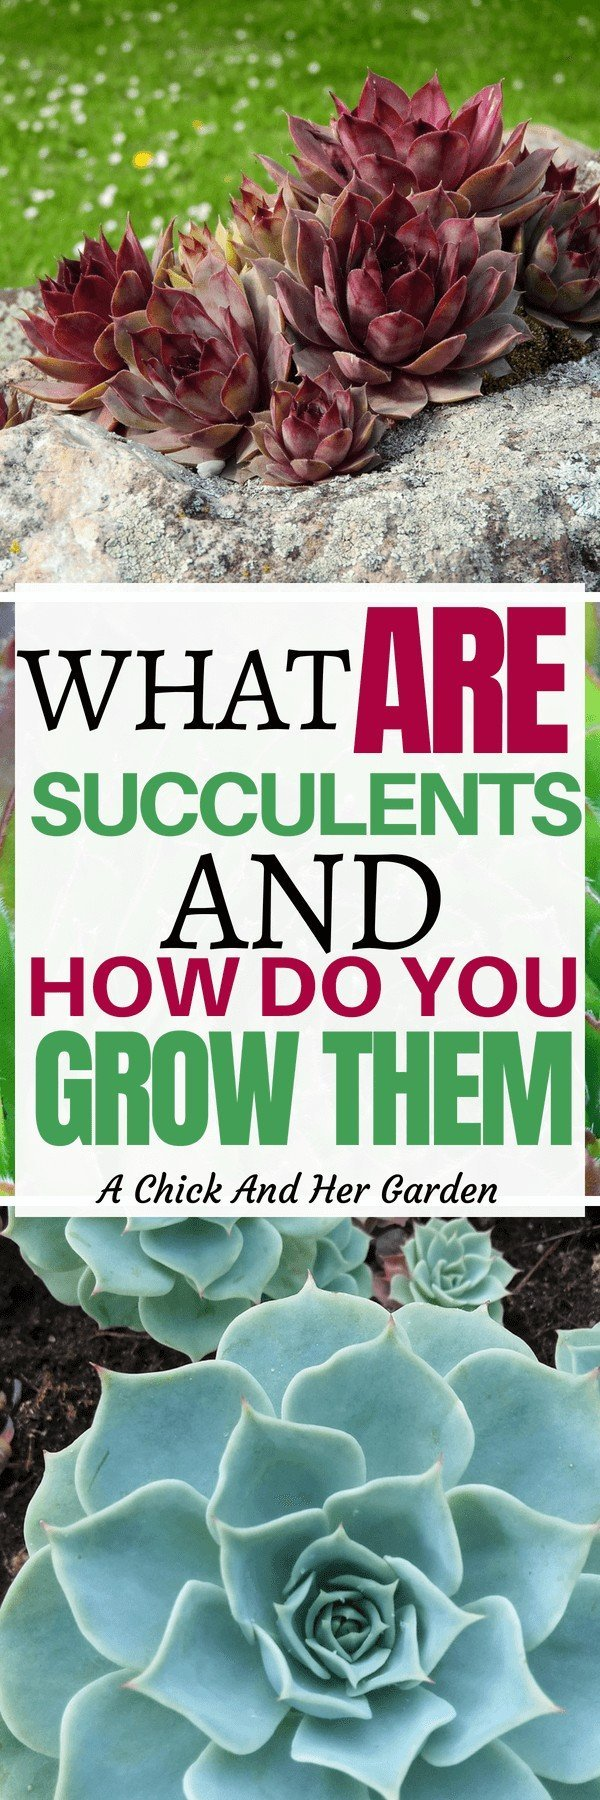 Succulents have gotten so popular! I see them everywhere! Here are some great tips on the different types and how to grow them! #succulentcare #howtogrowsucculents #succulents #greenthumb #houseplants #hensandchicks #achickandhergarden